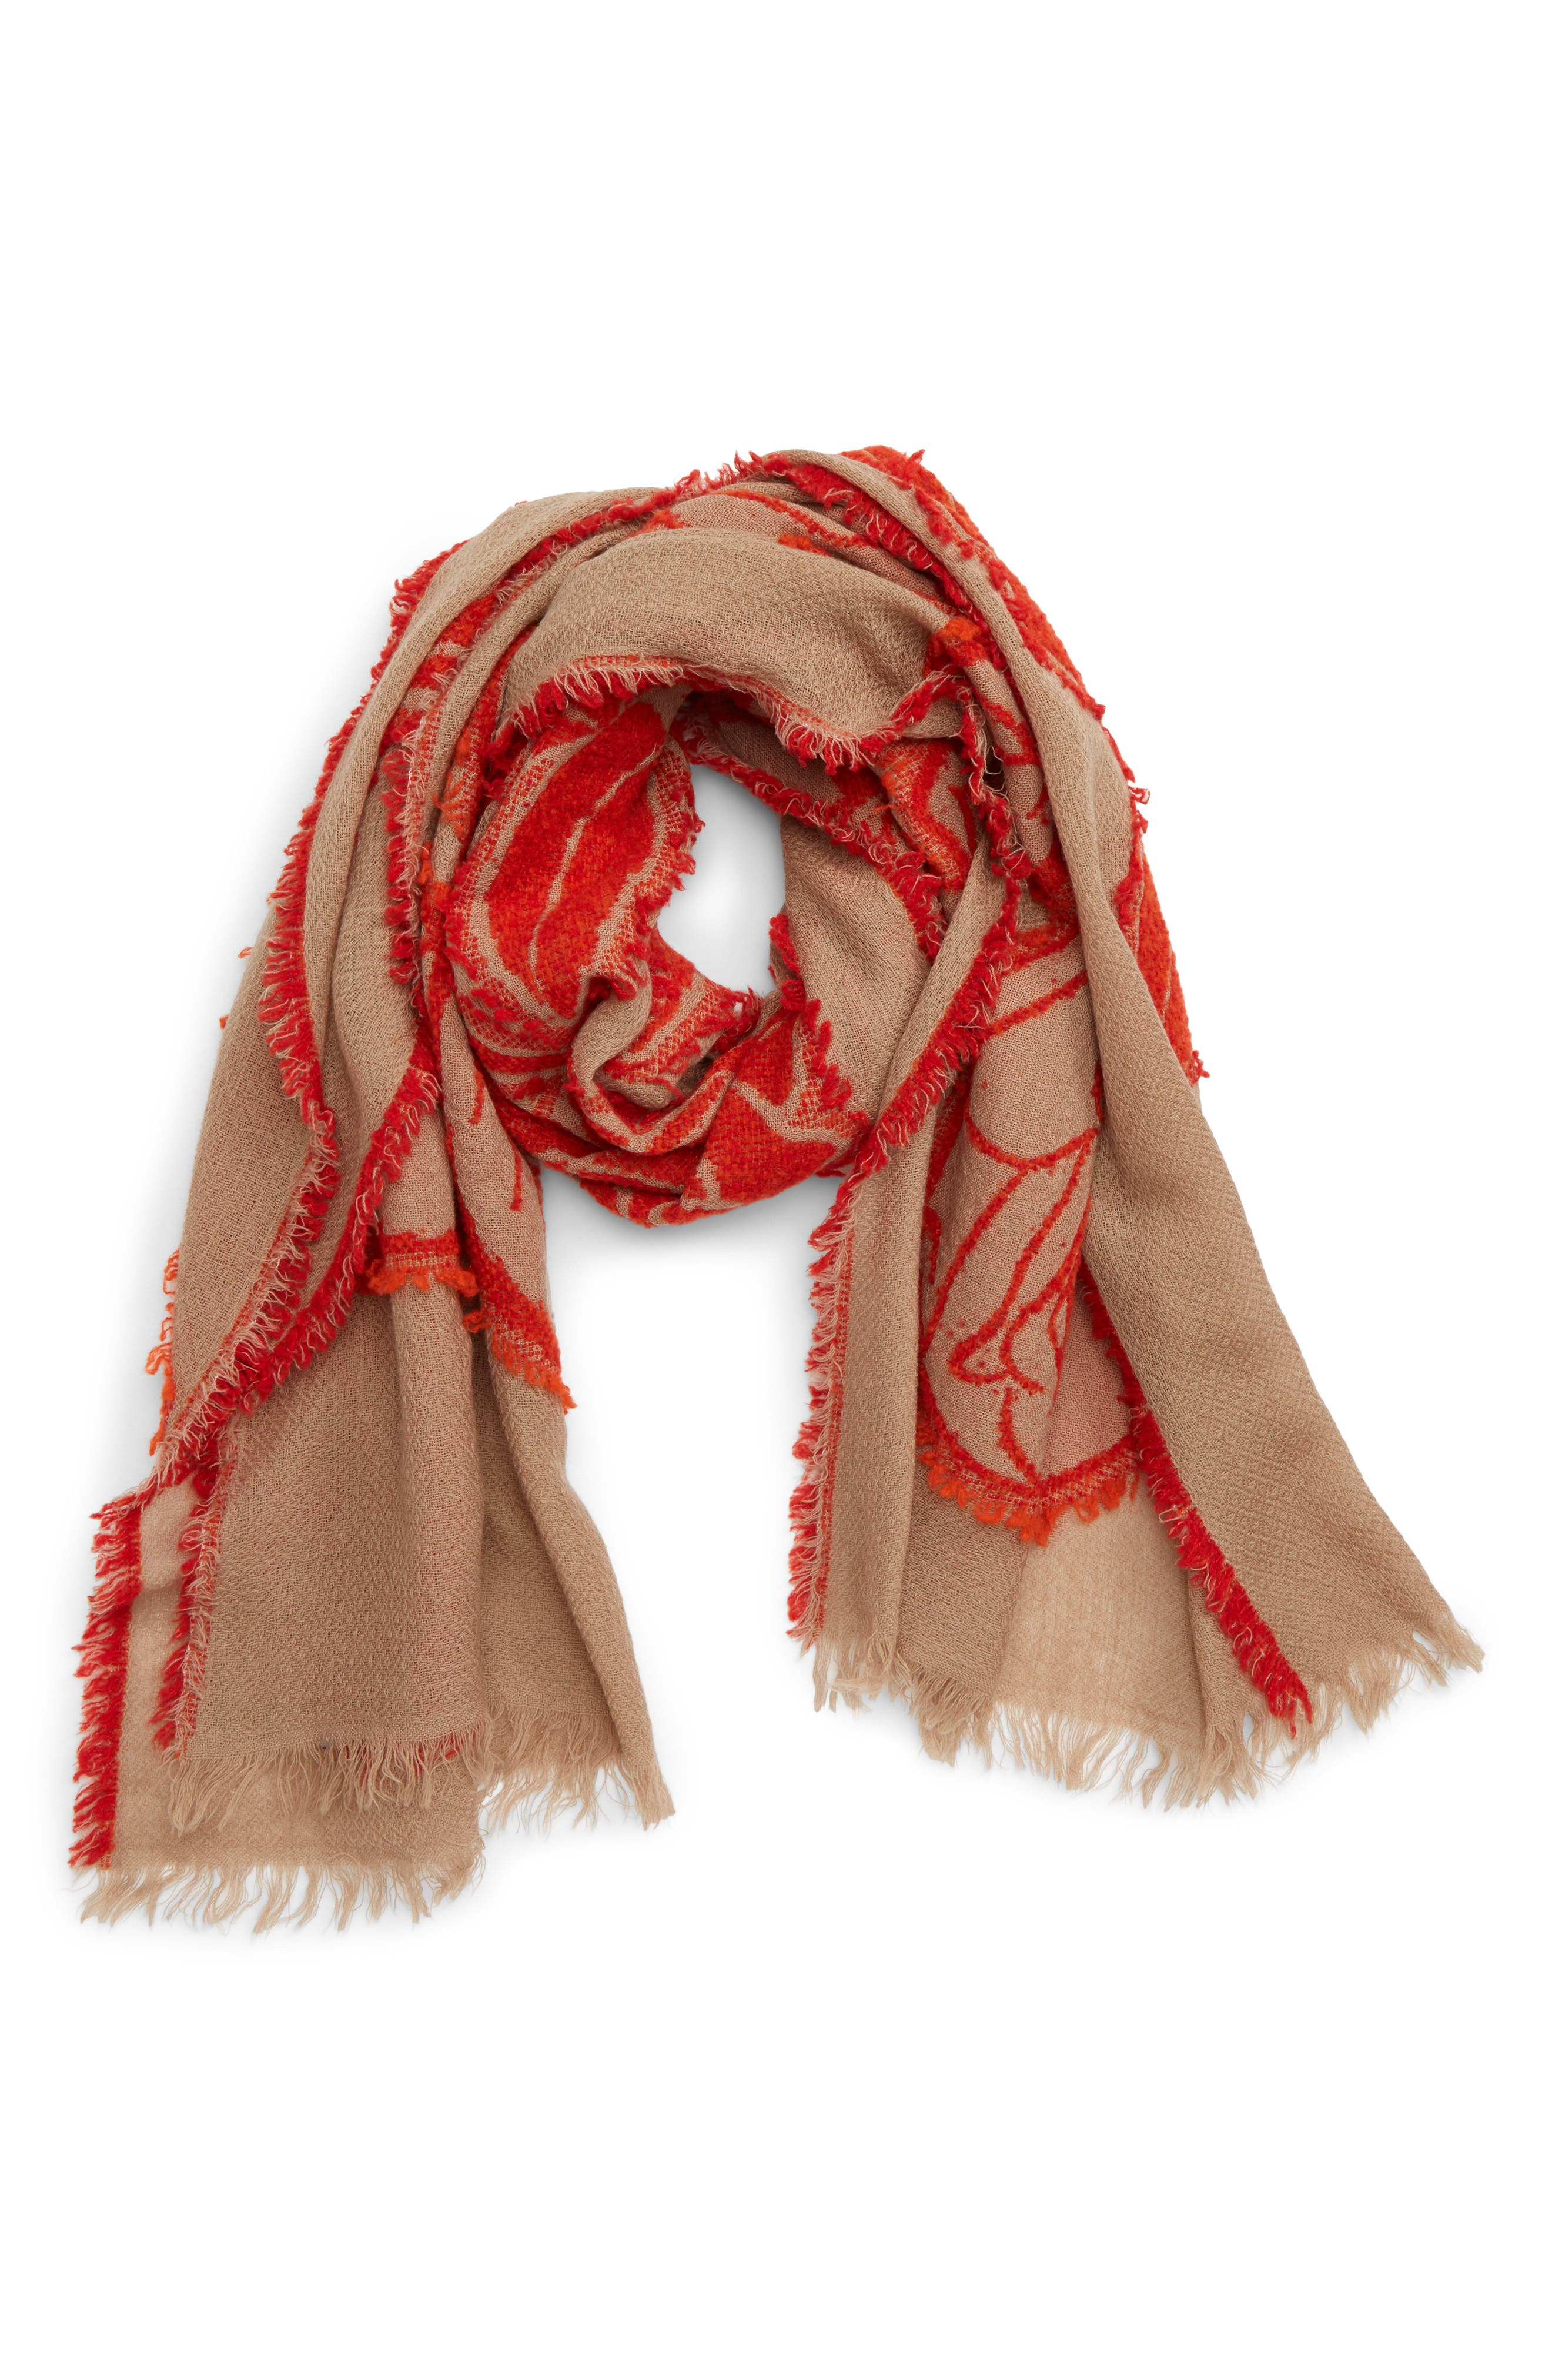 Rose Jacquard Wool Blend Scarf,                             Alternate thumbnail 2, color,                             RED X BEIGE